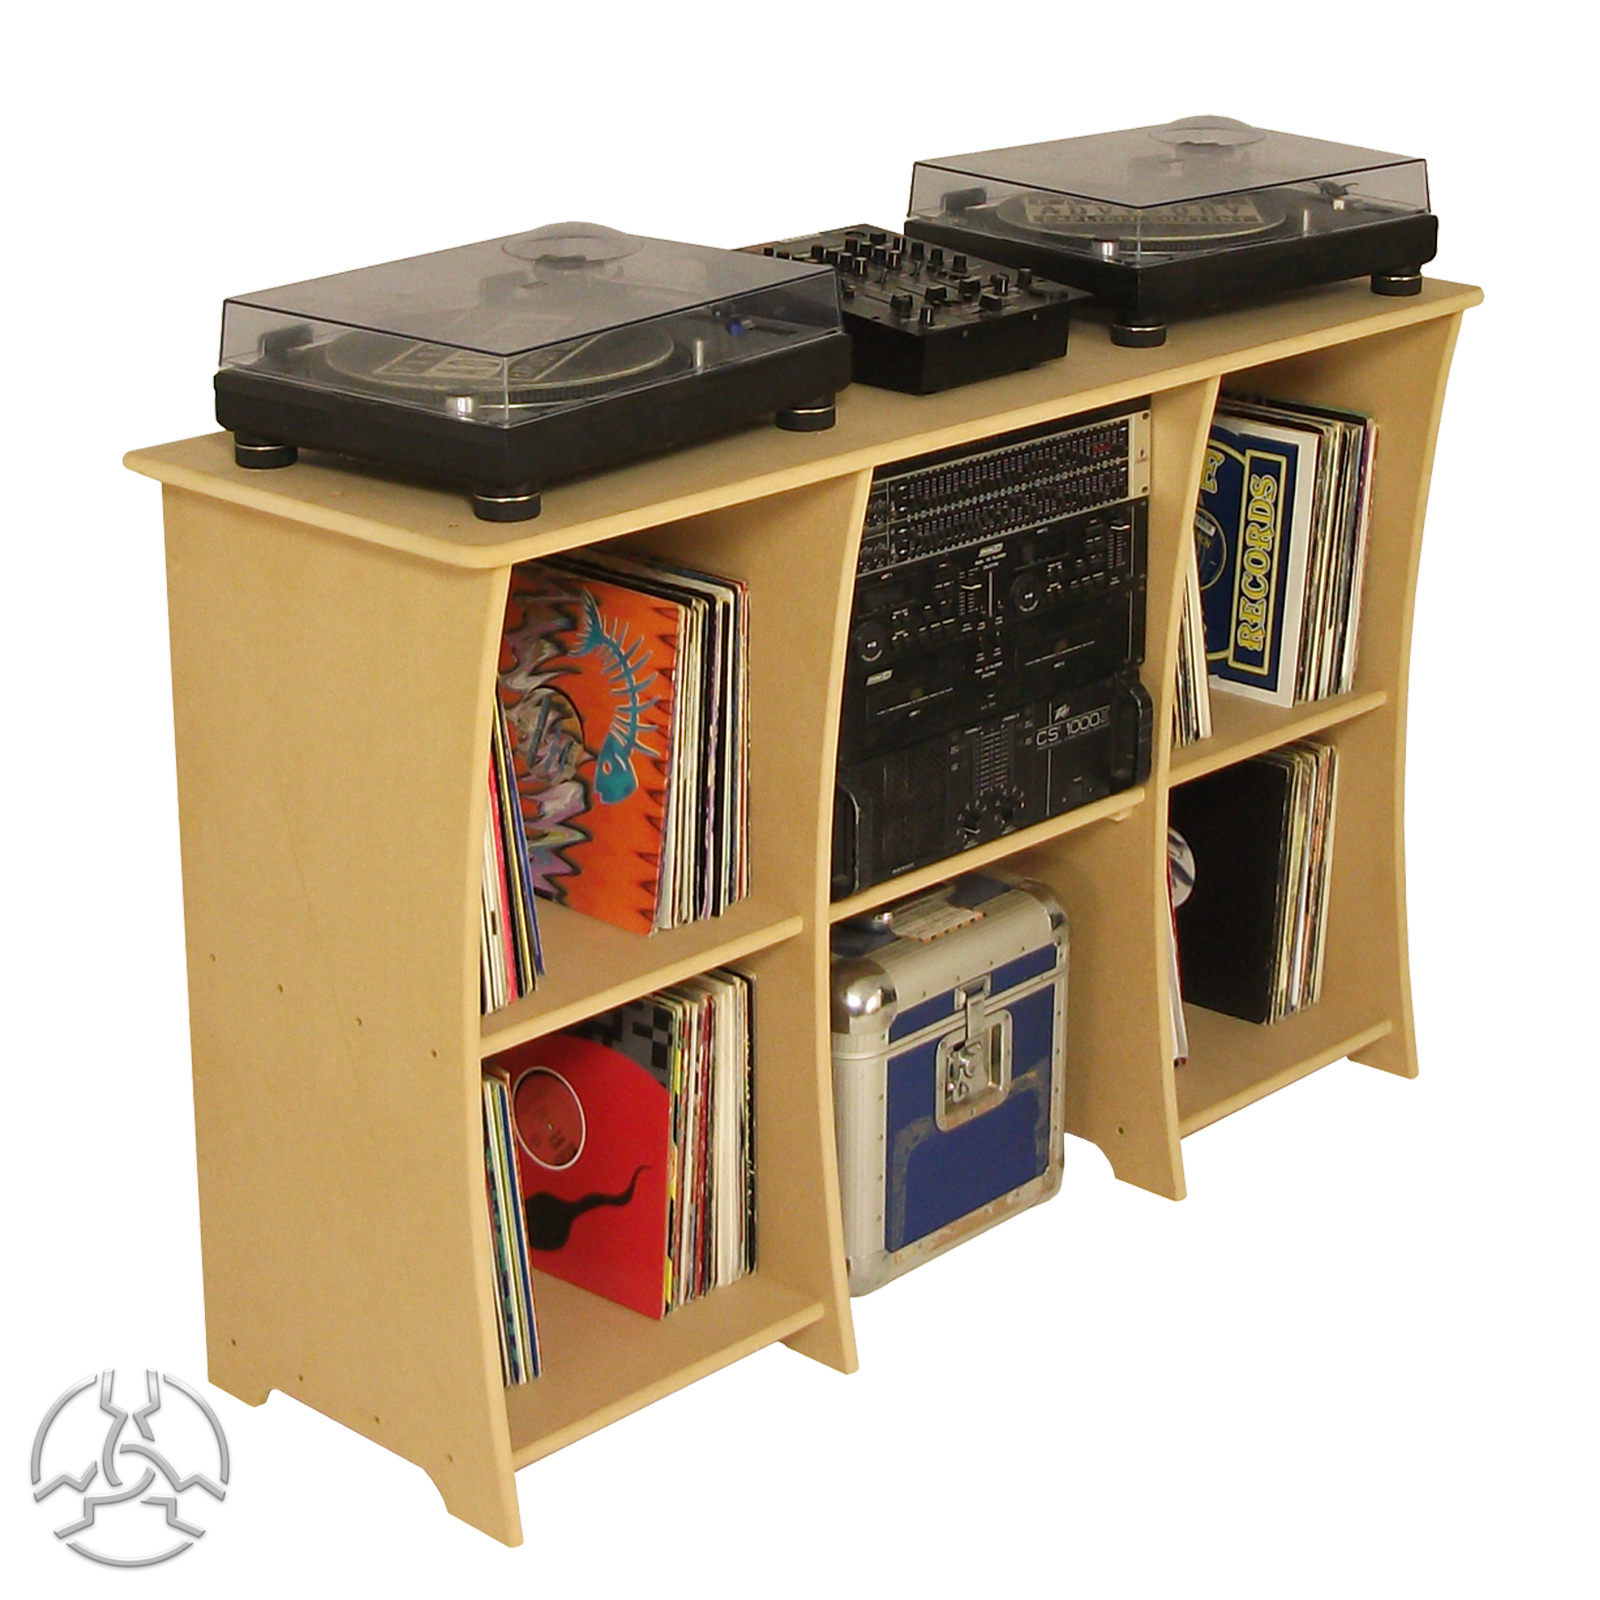 DS1 DJ Desk Our Price: £138.00  Description: The DS1 deck stand is popular with vinyl enthusiasts, ideal for 1210's and mixer up to 520mm wide.  Dimensions: W 1440 x D 480 x H 920 Website: http://sounddesks.co.uk/desks-50-c.asp